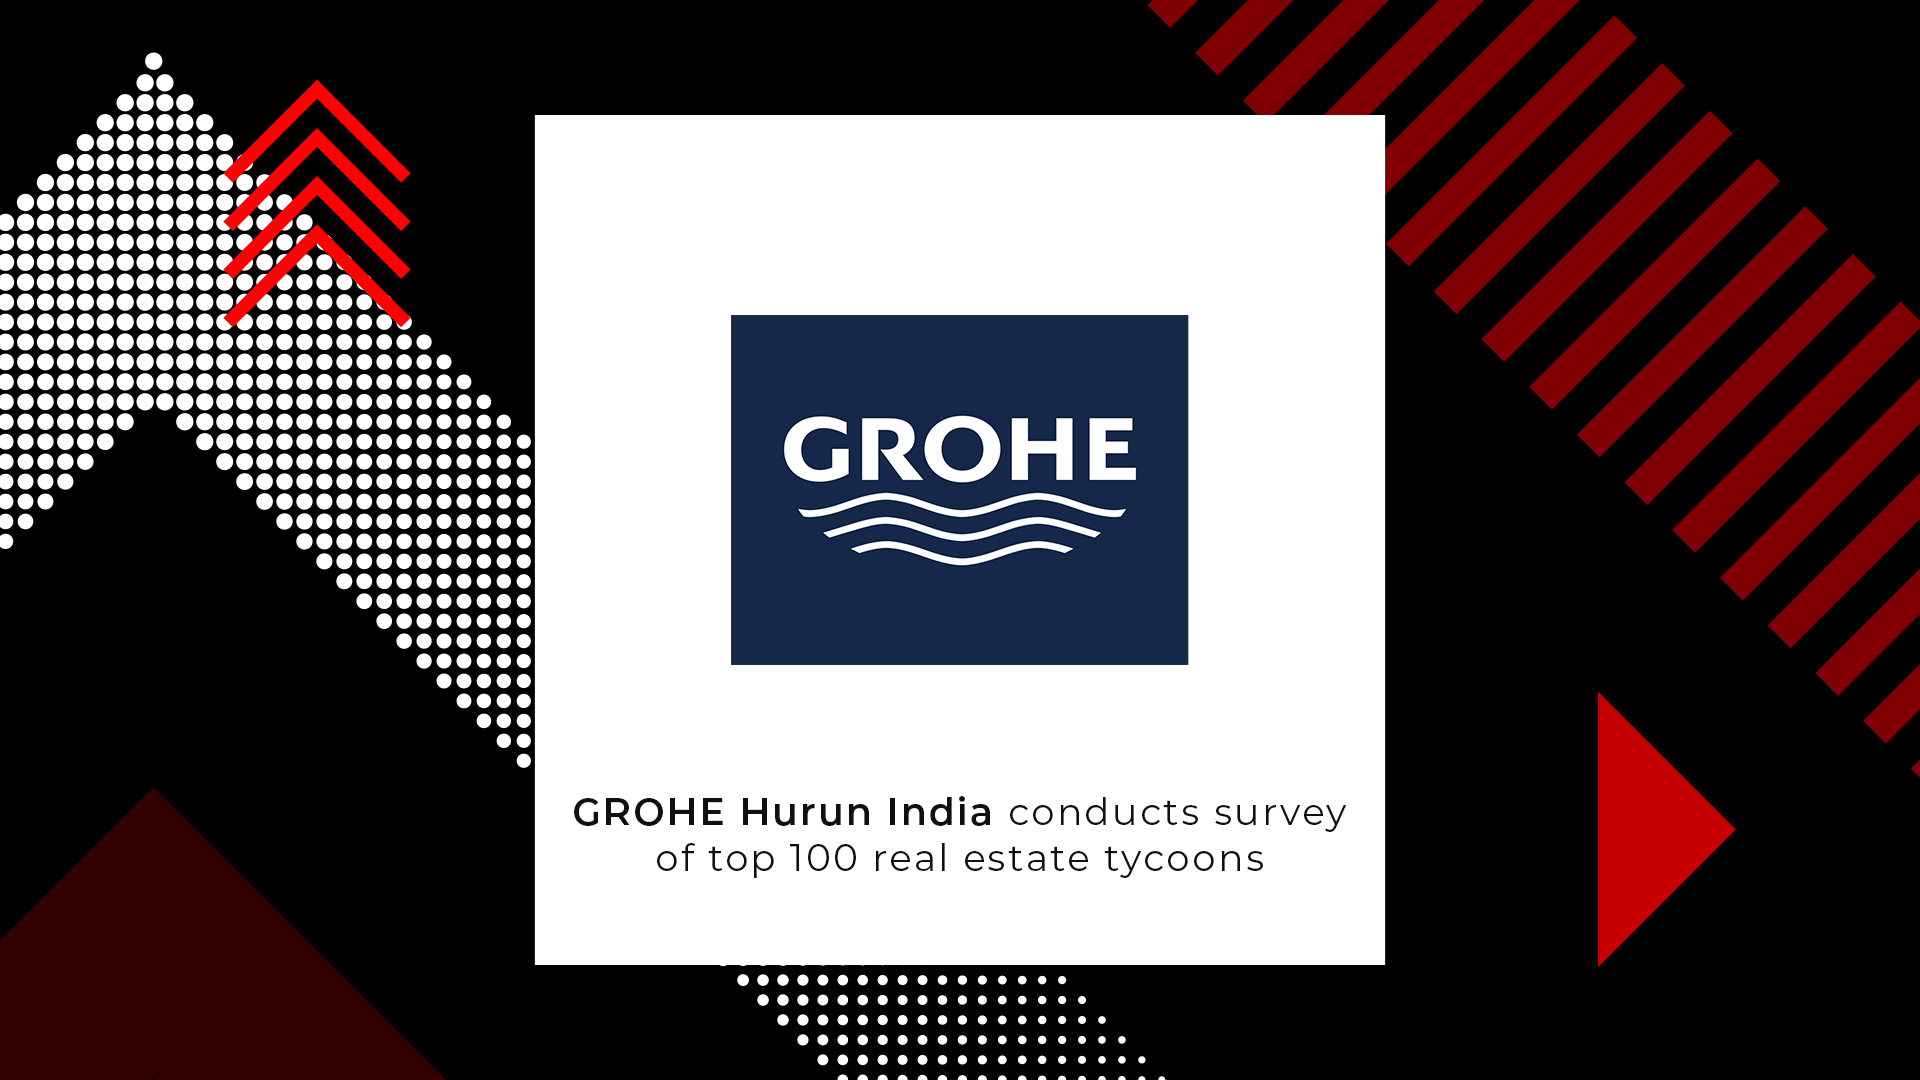 GROHE Hurun India conducts survey of top 100 real estate tycoons